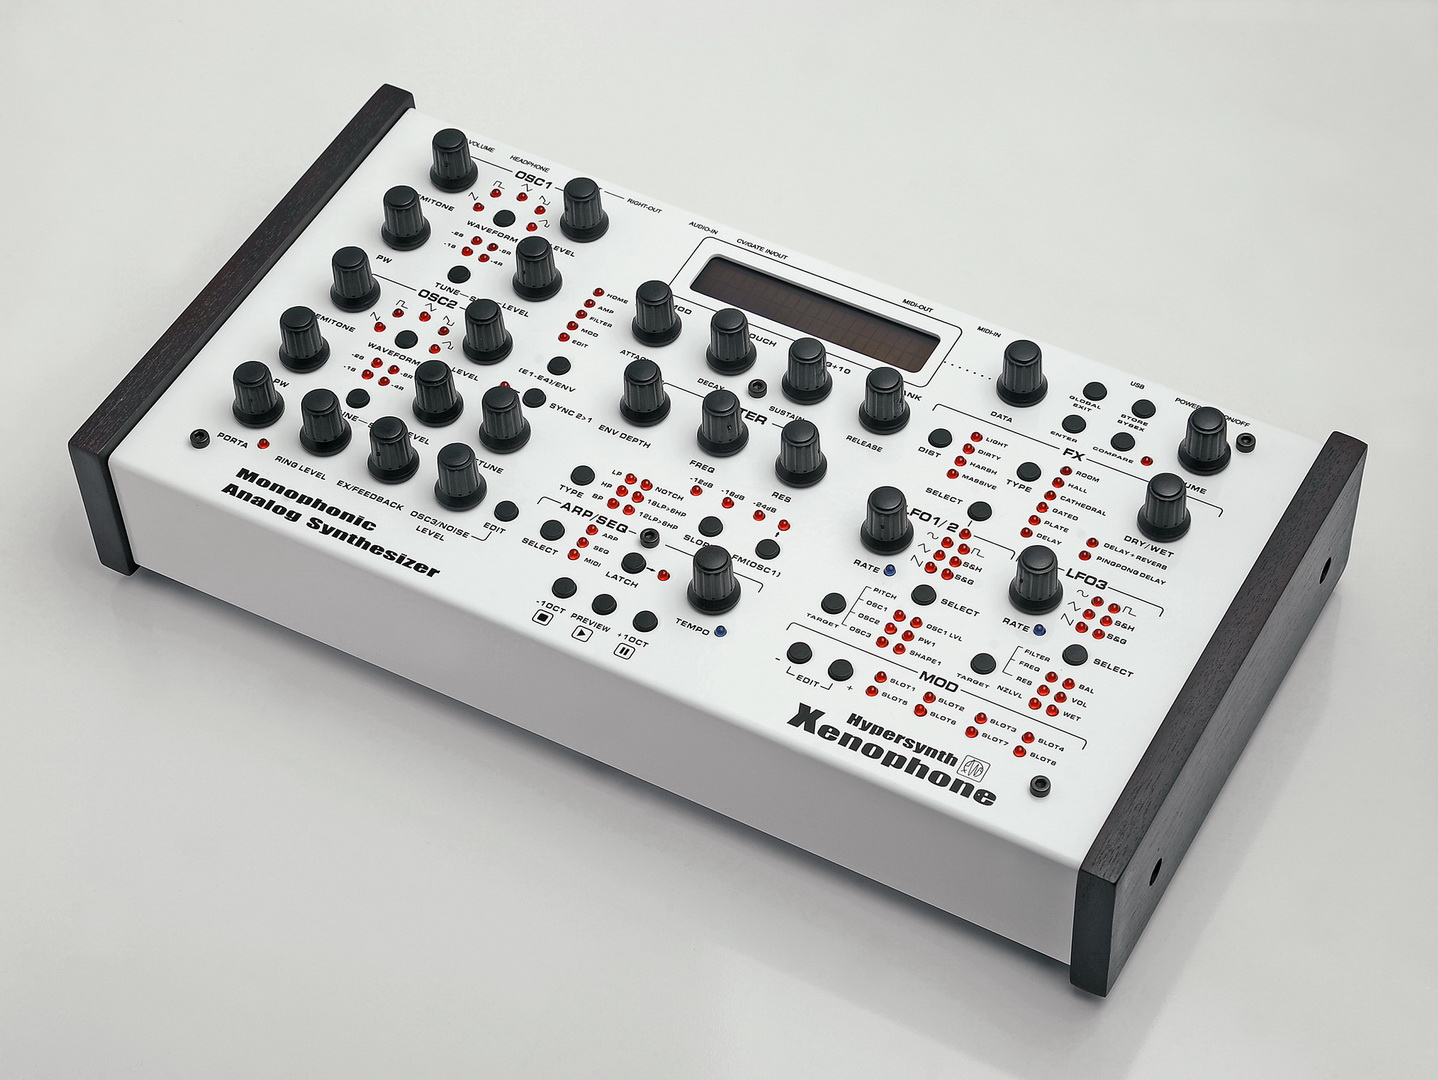 Hypersynth Xenophone